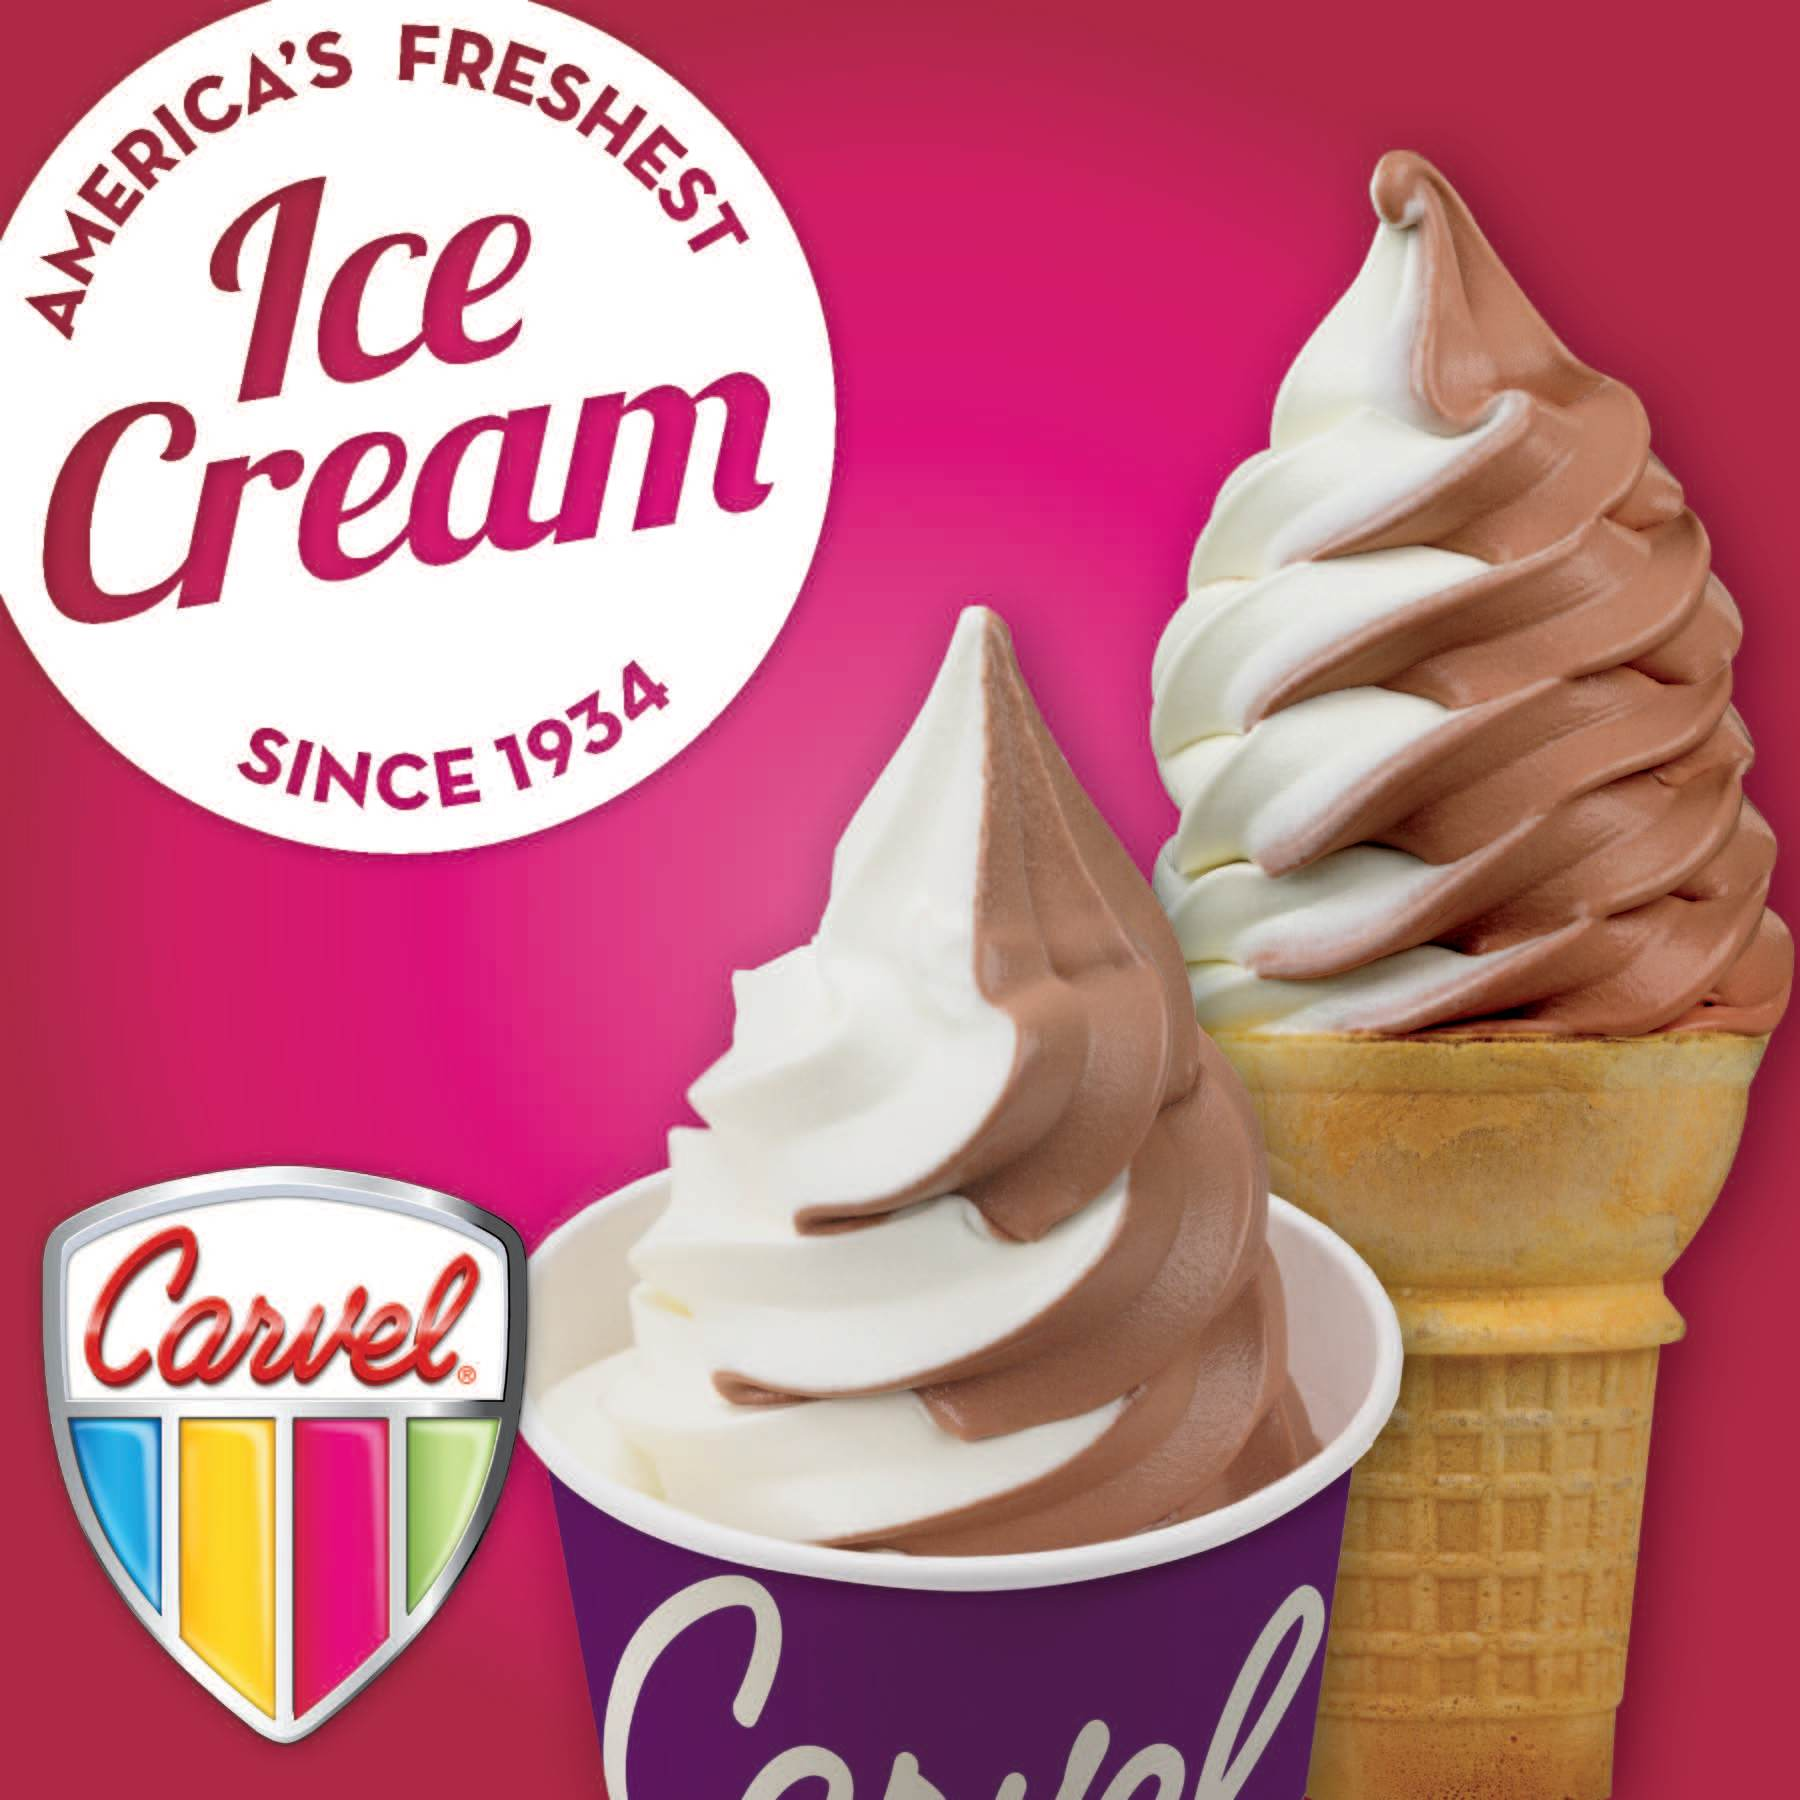 carvel ice cream Order delivery online from carvel ice cream in los angeles instantly view carvel ice cream's march 2018 deals, coupons & menus order delivery online right now or by phone from grubhub.